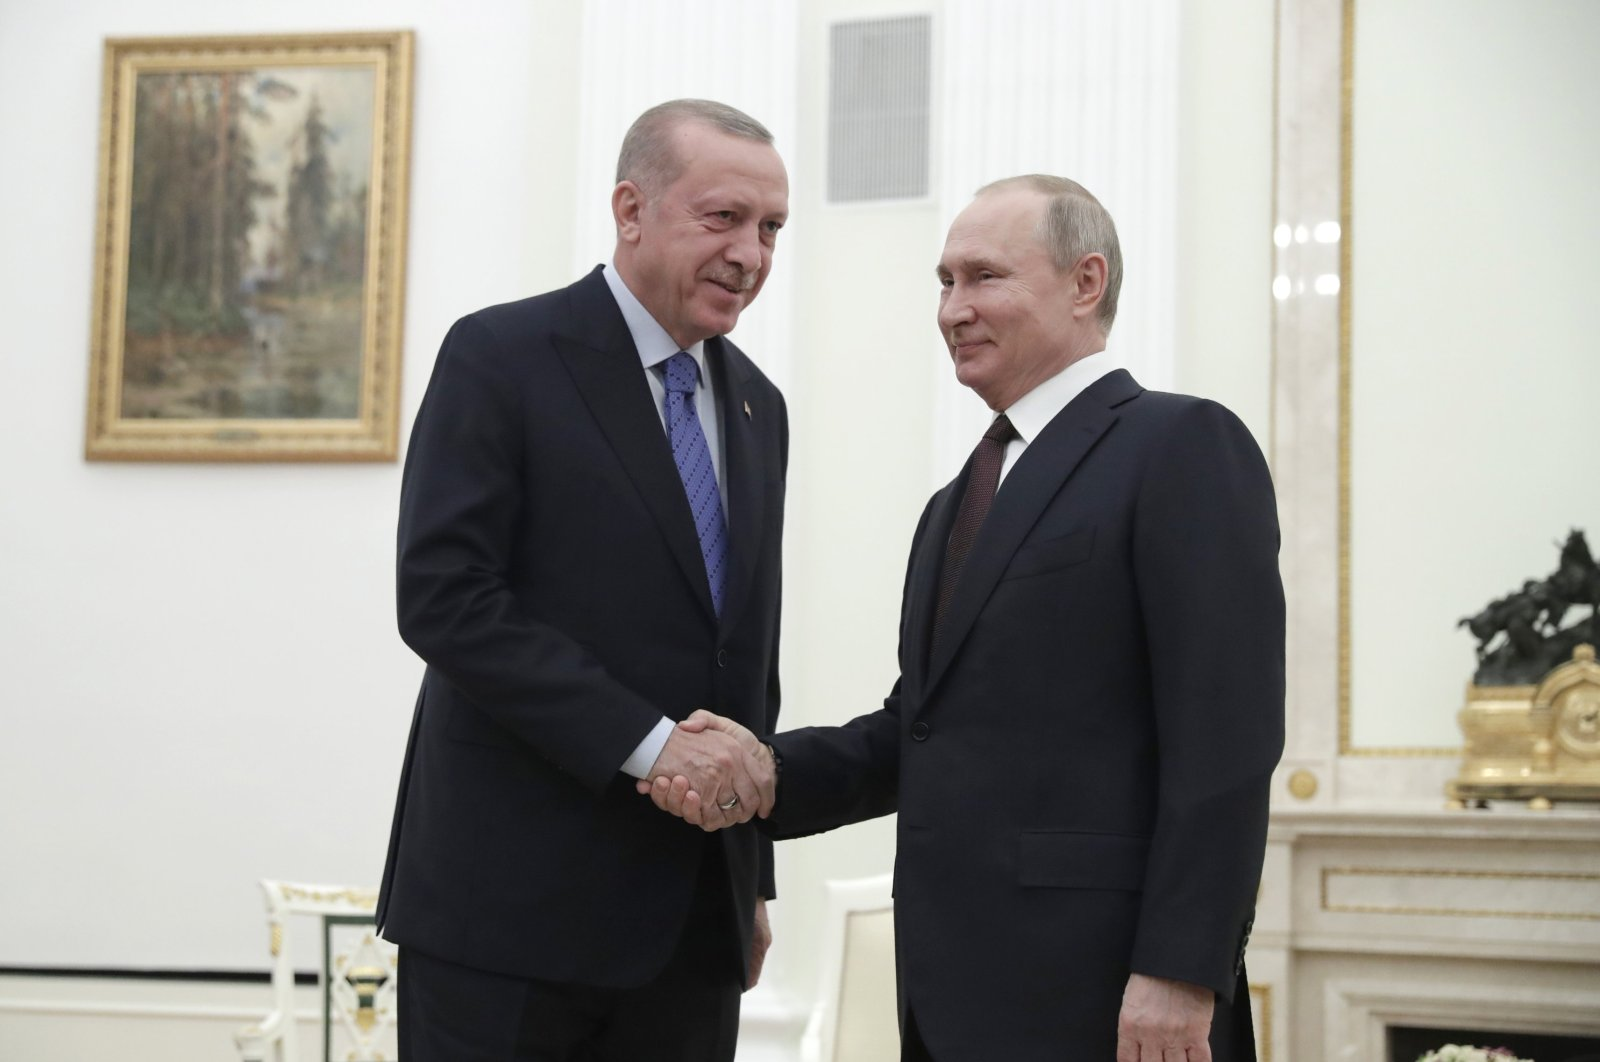 Russian President Vladimir Putin, right, and President Recep Tayyip Erdogan shake hands prior to their talks at the Kremlin in Moscow, Russia, March 5, 2020. (AP Photo)